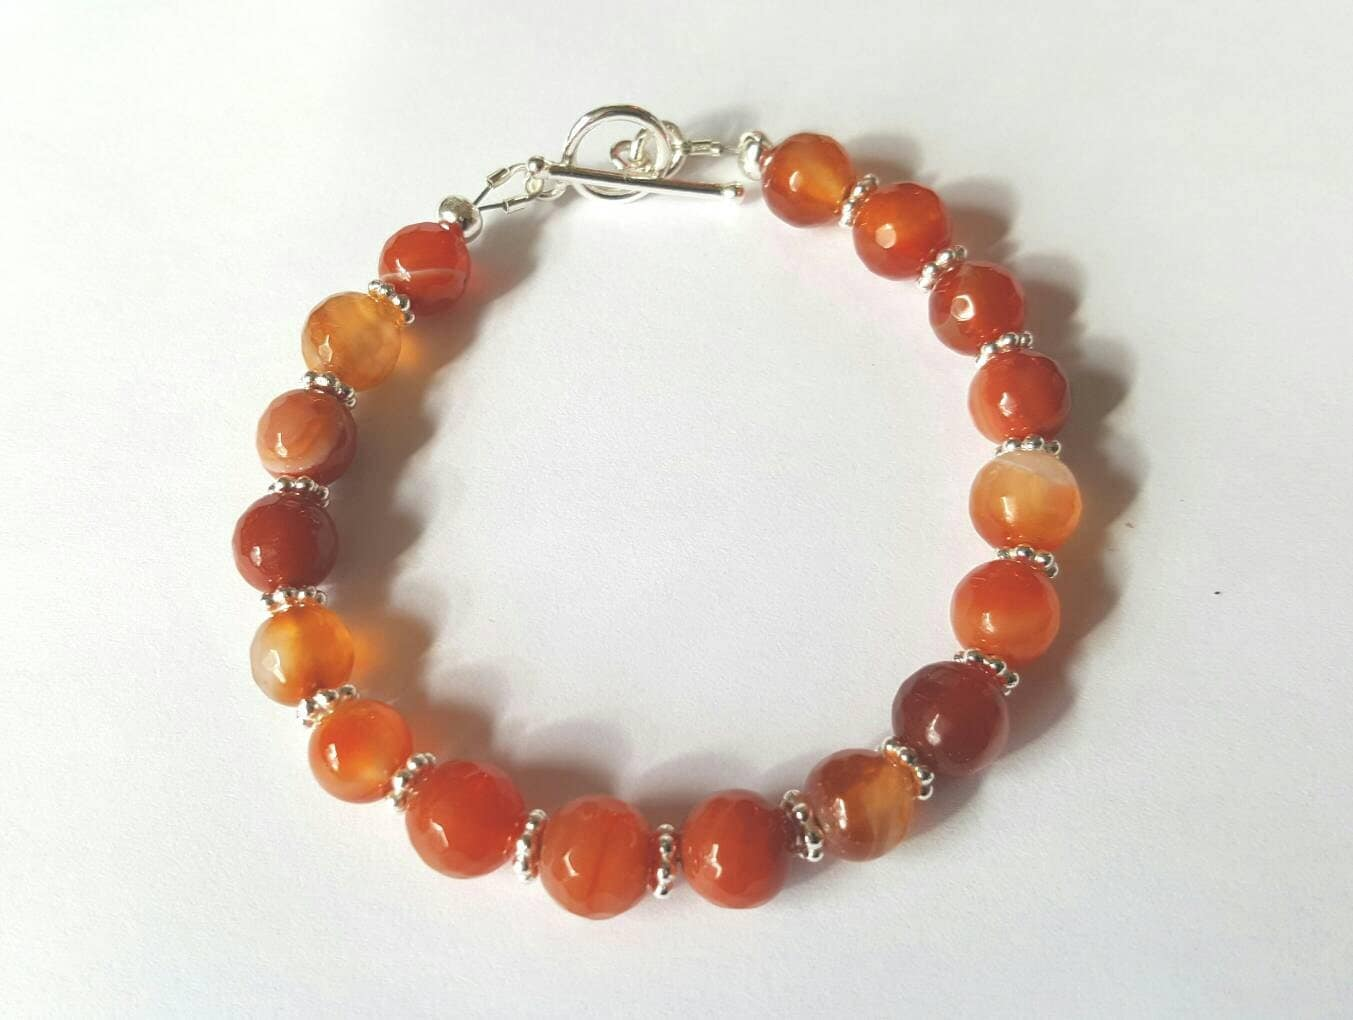 Orange agate and silver bracelet with toggle clasp